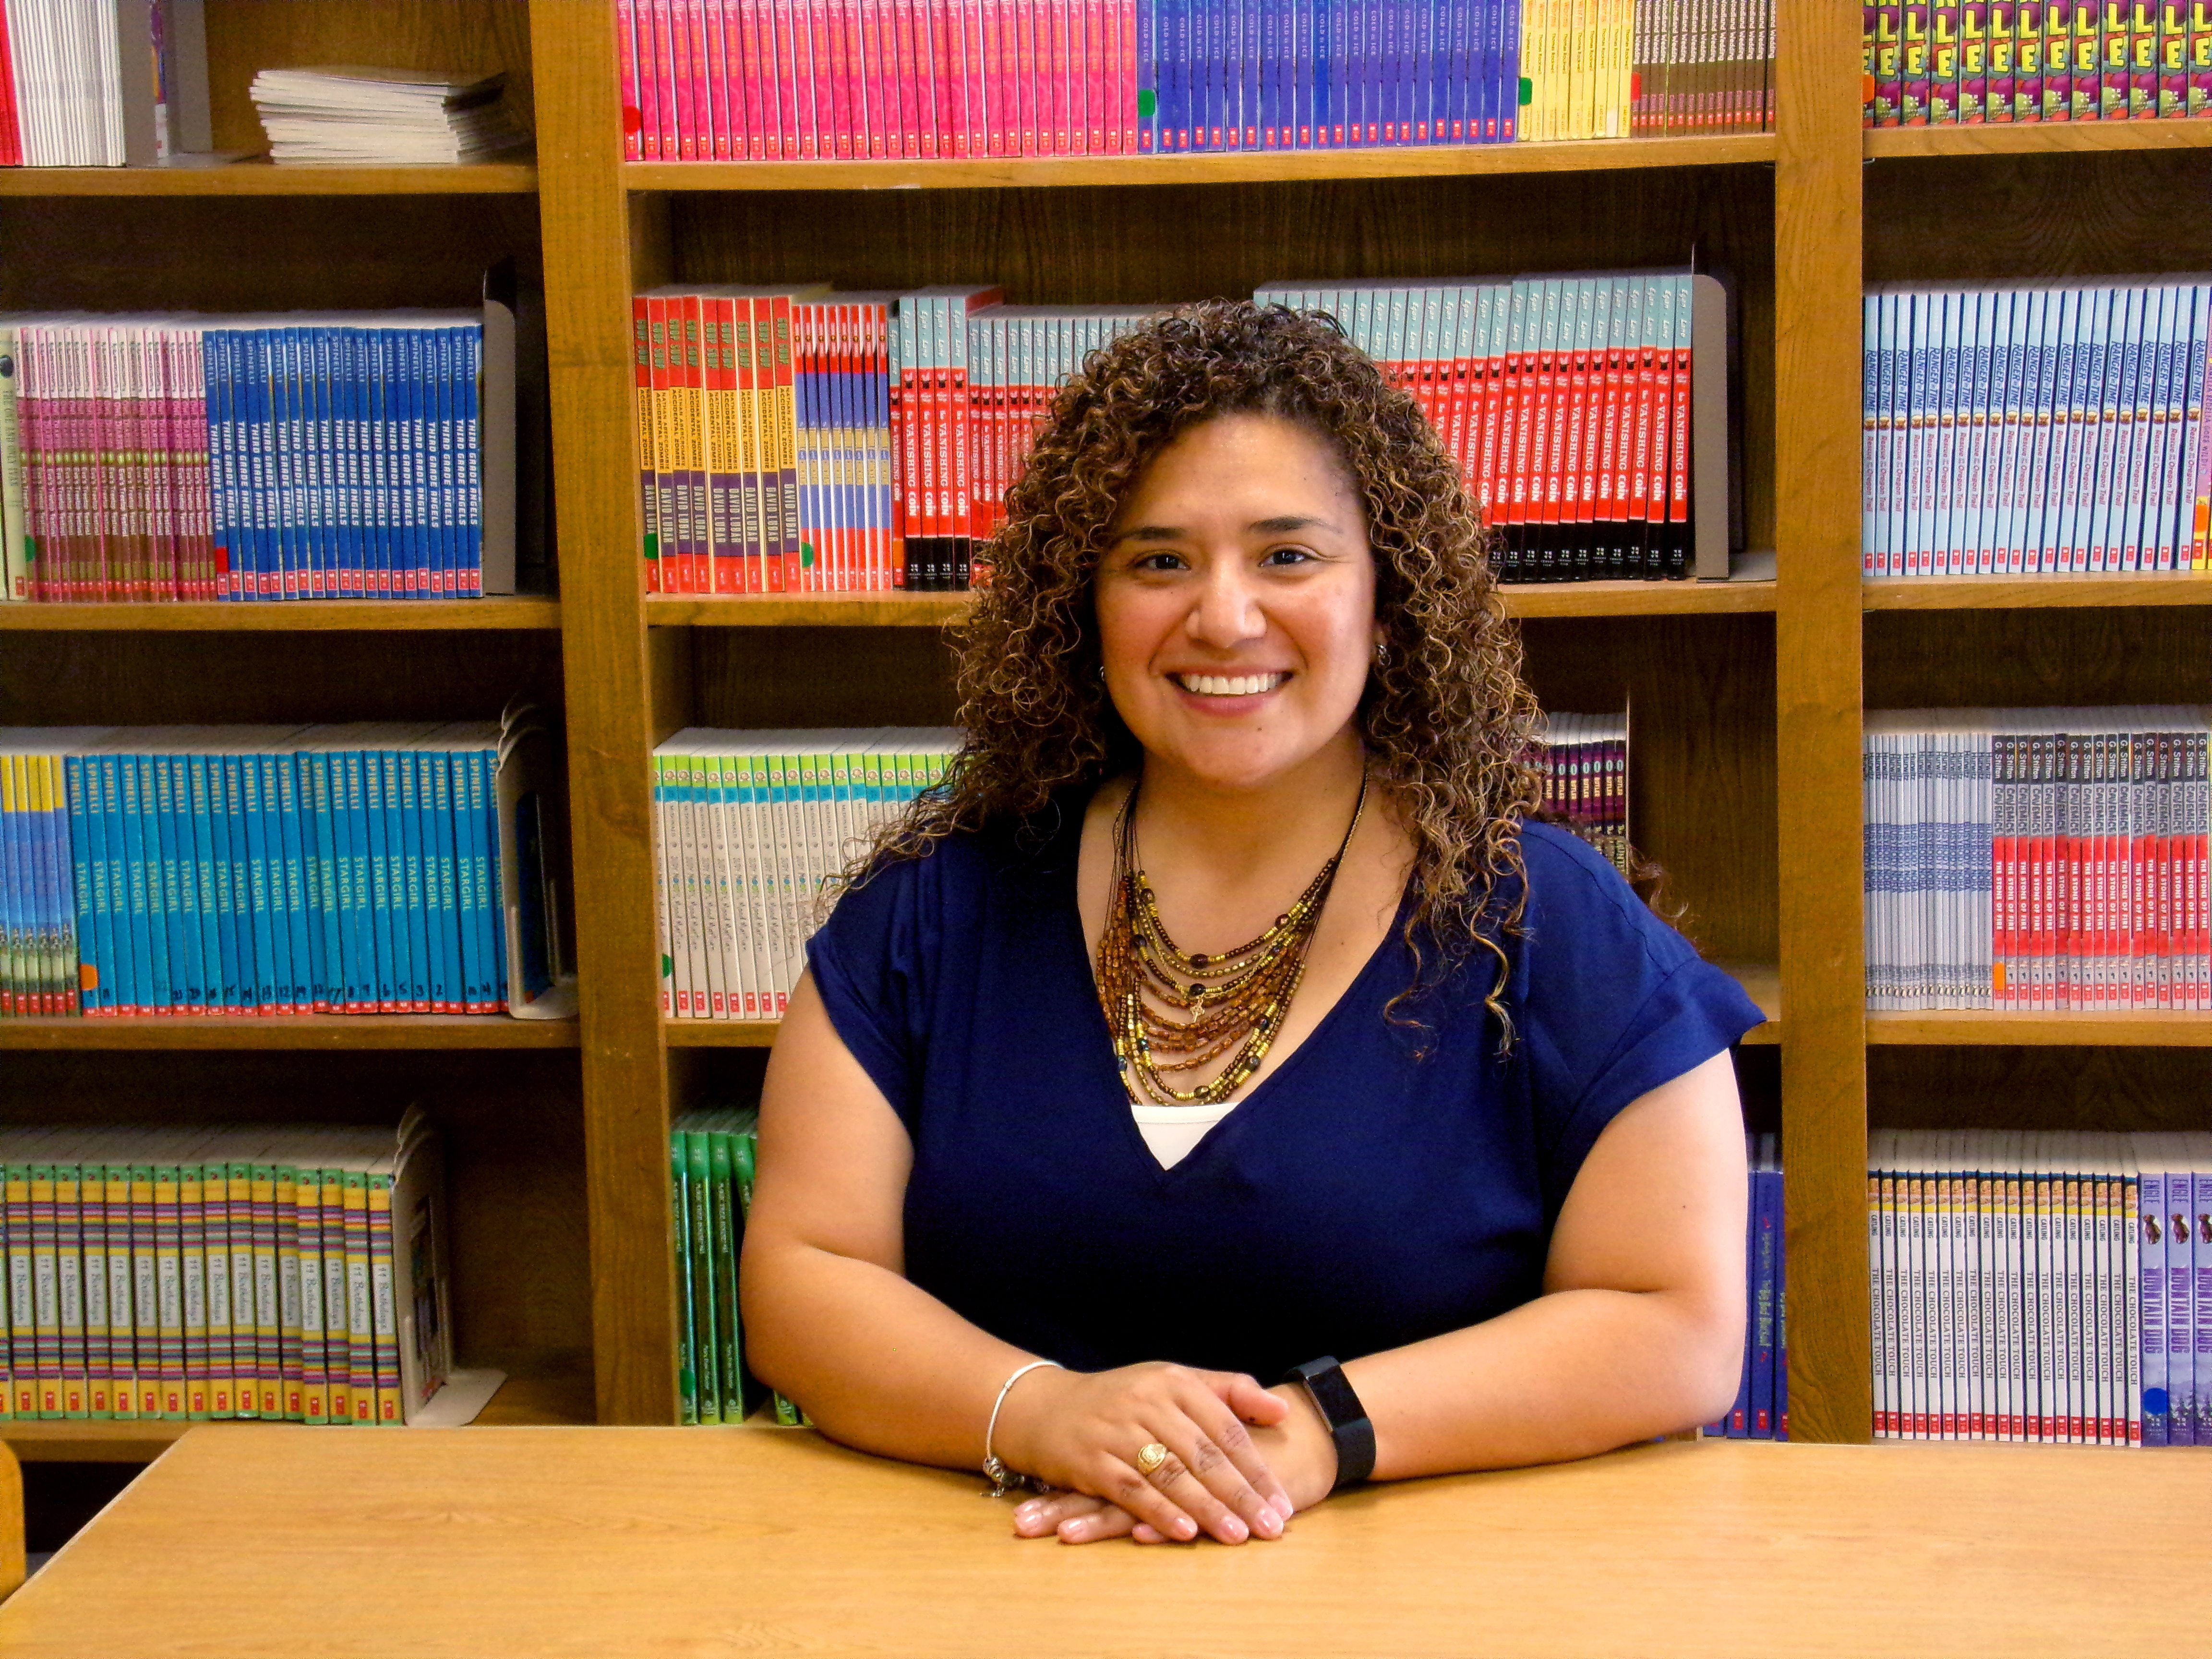 Cerelia Diaz recognized as 2017 National Student Teacher of the Year